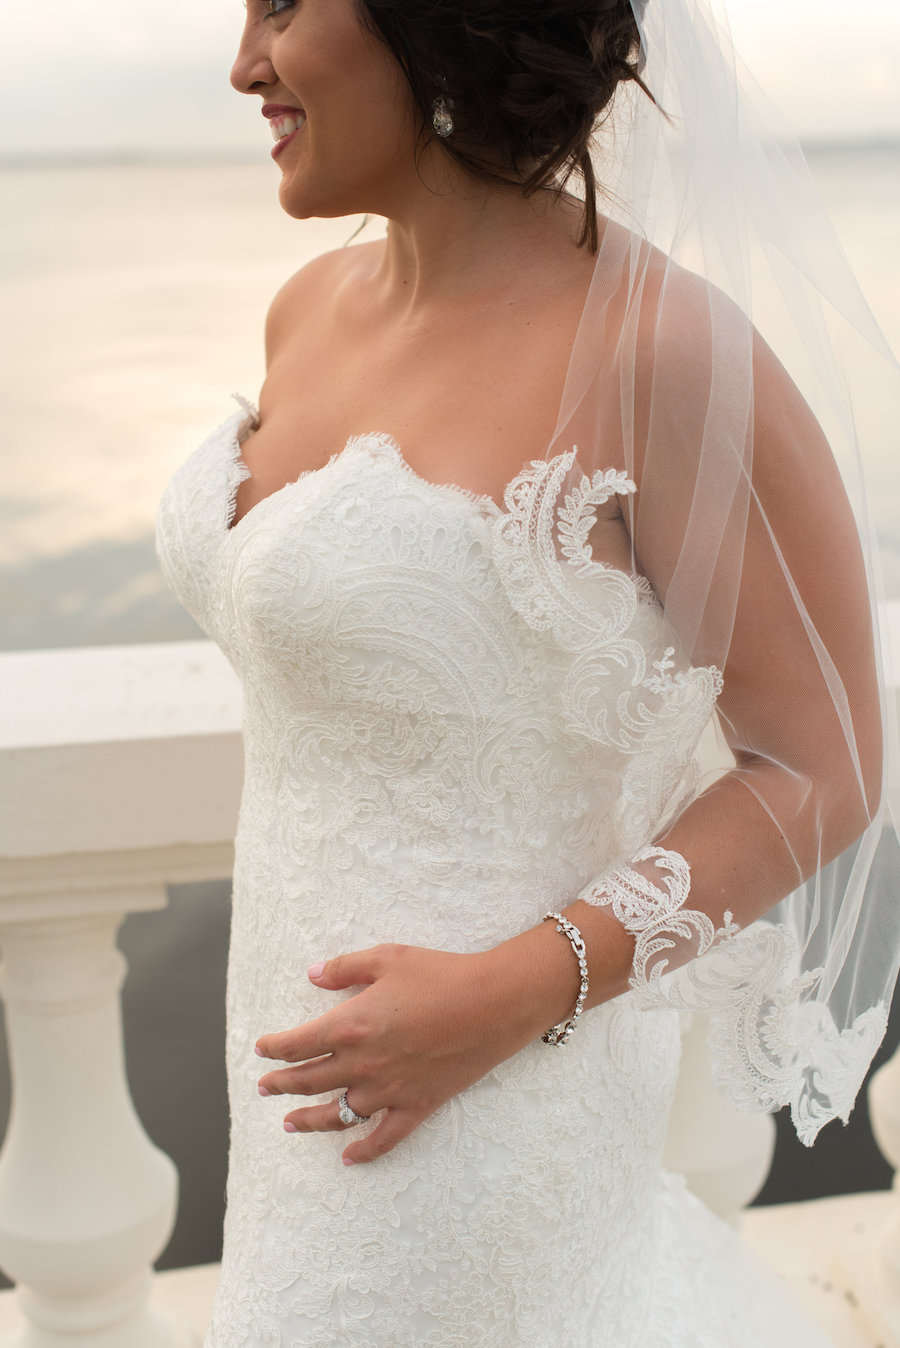 Waterfront Bridal Portrait with V Neck Sweetheart Lace Allure Wedding Dress and Lace Edged Veil   South Tampa Wedding Photographer Caroline & Evan Photography